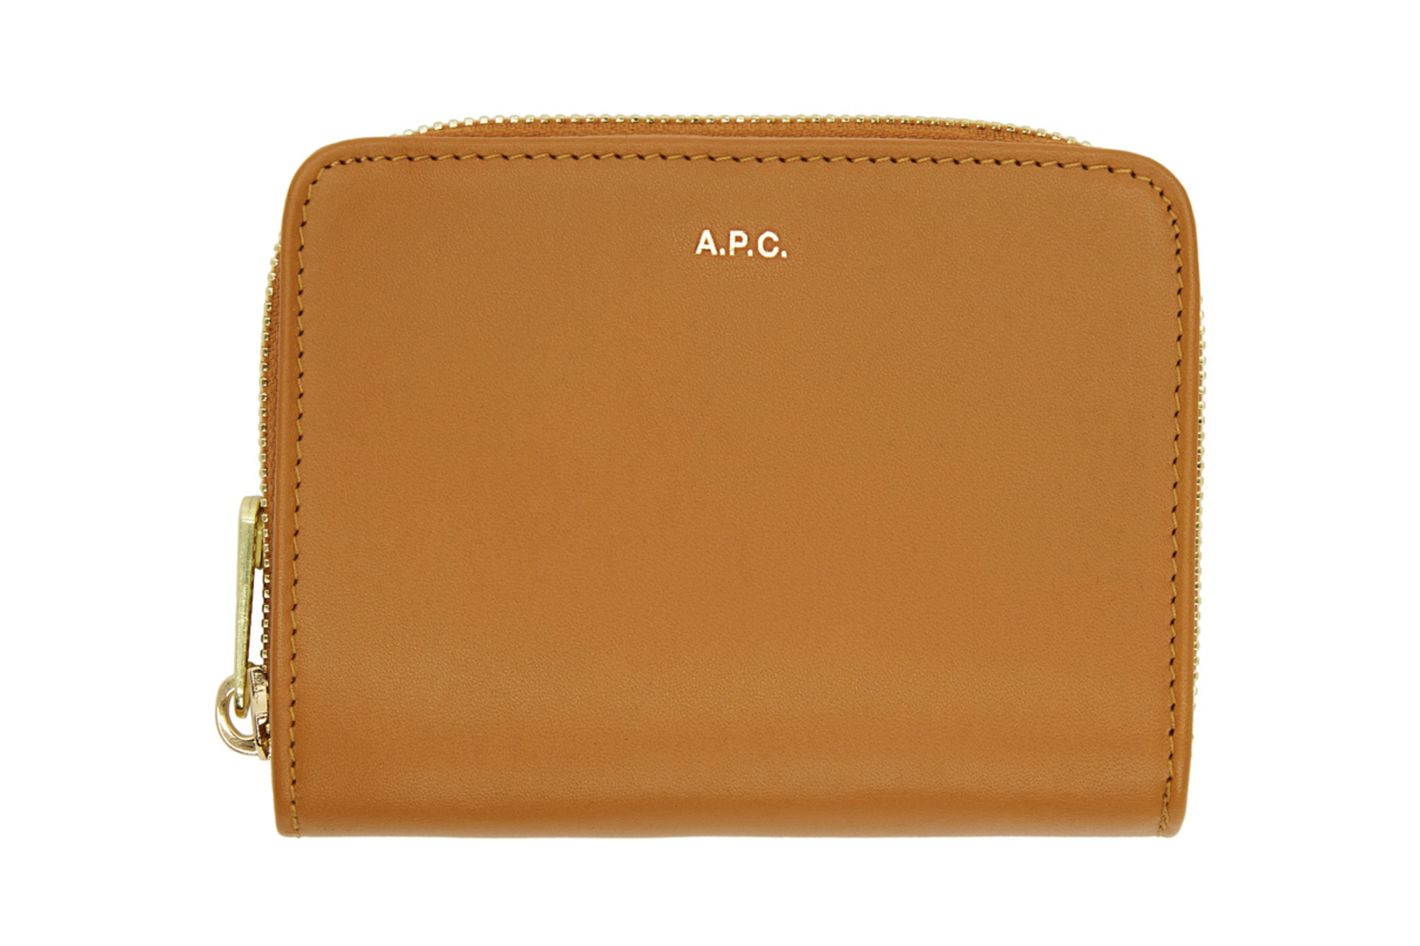 A.P.C.  Tan Compact Zipped Wallet